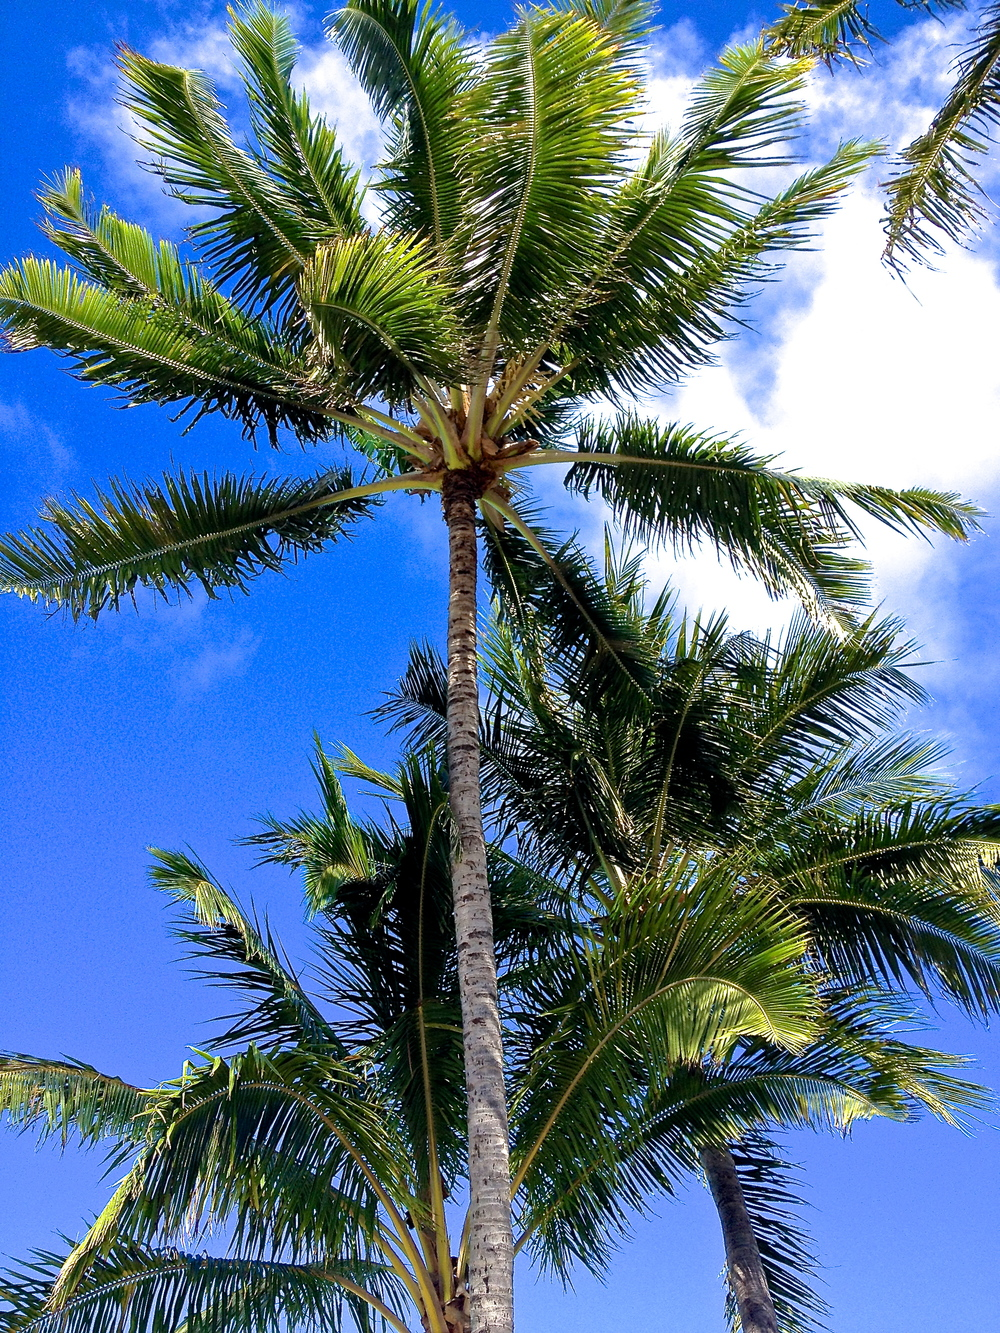 The palms be our minds, the clouds be our thoughts~Wave your pretty palms at the passerby's of clouds.